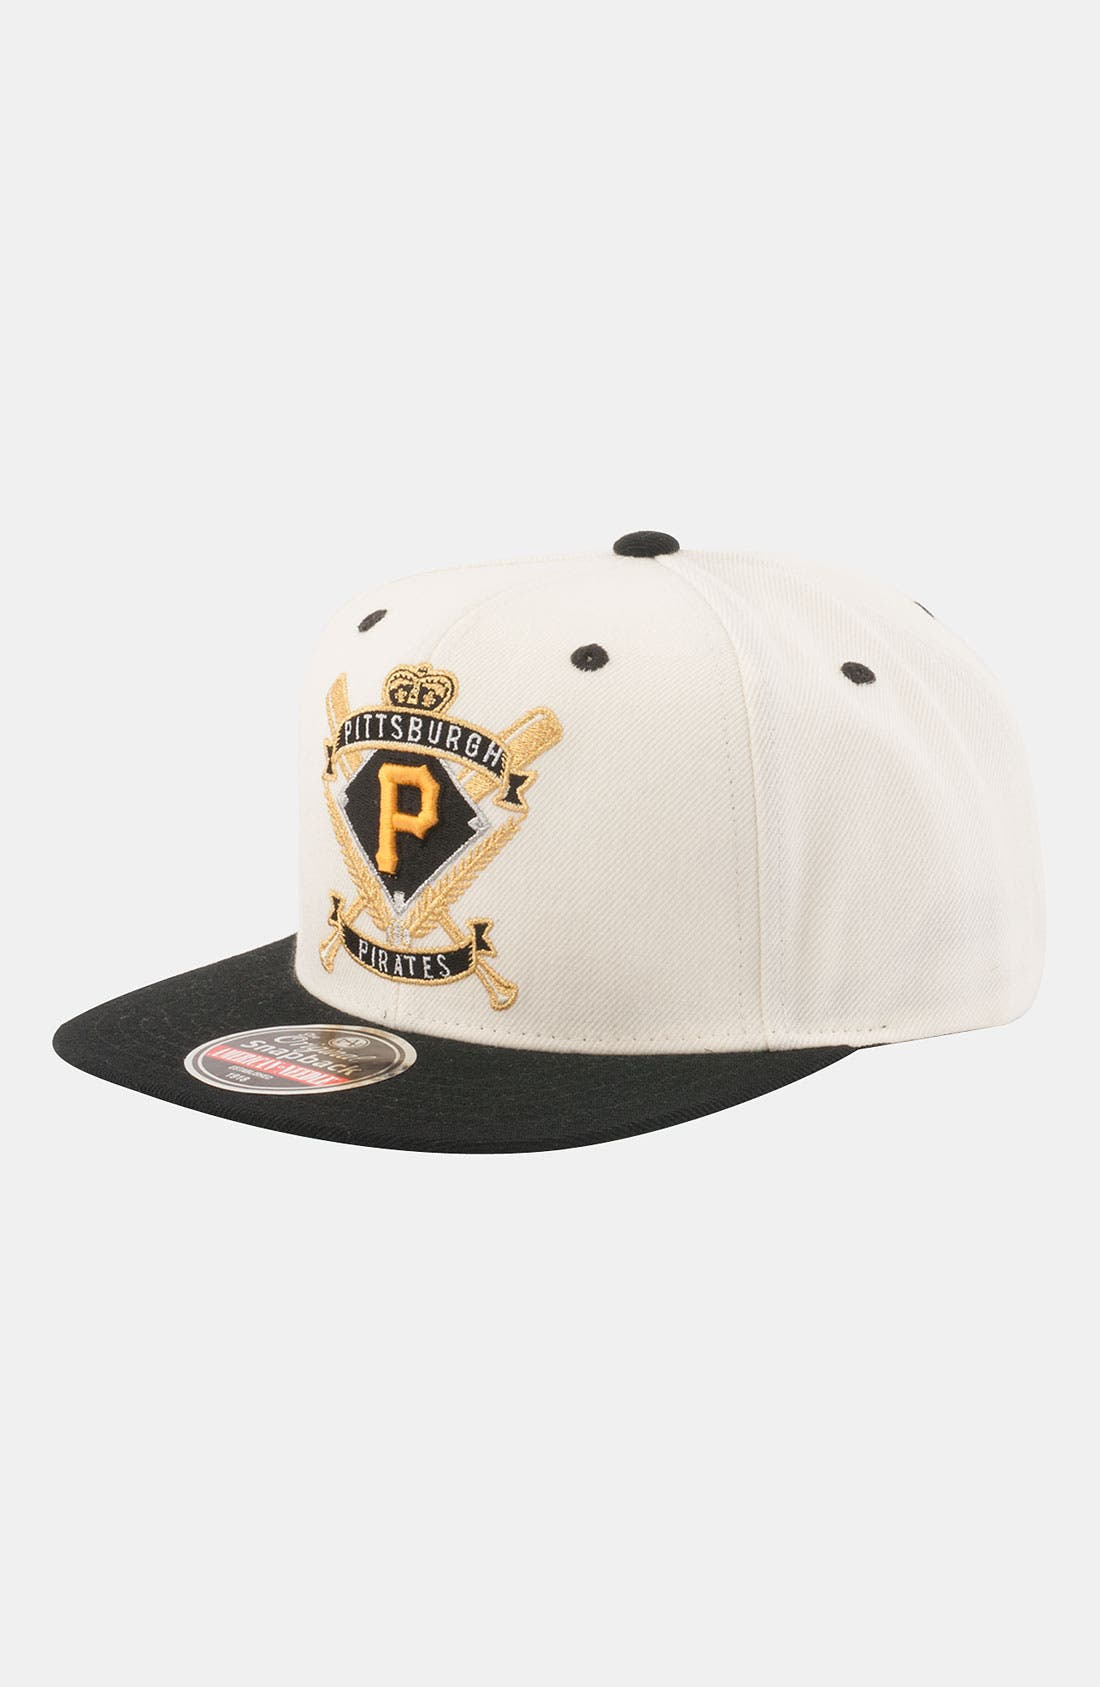 Main Image - American Needle 'Pittsburgh Pirates - Spirit Crest' Snapback Baseball Cap